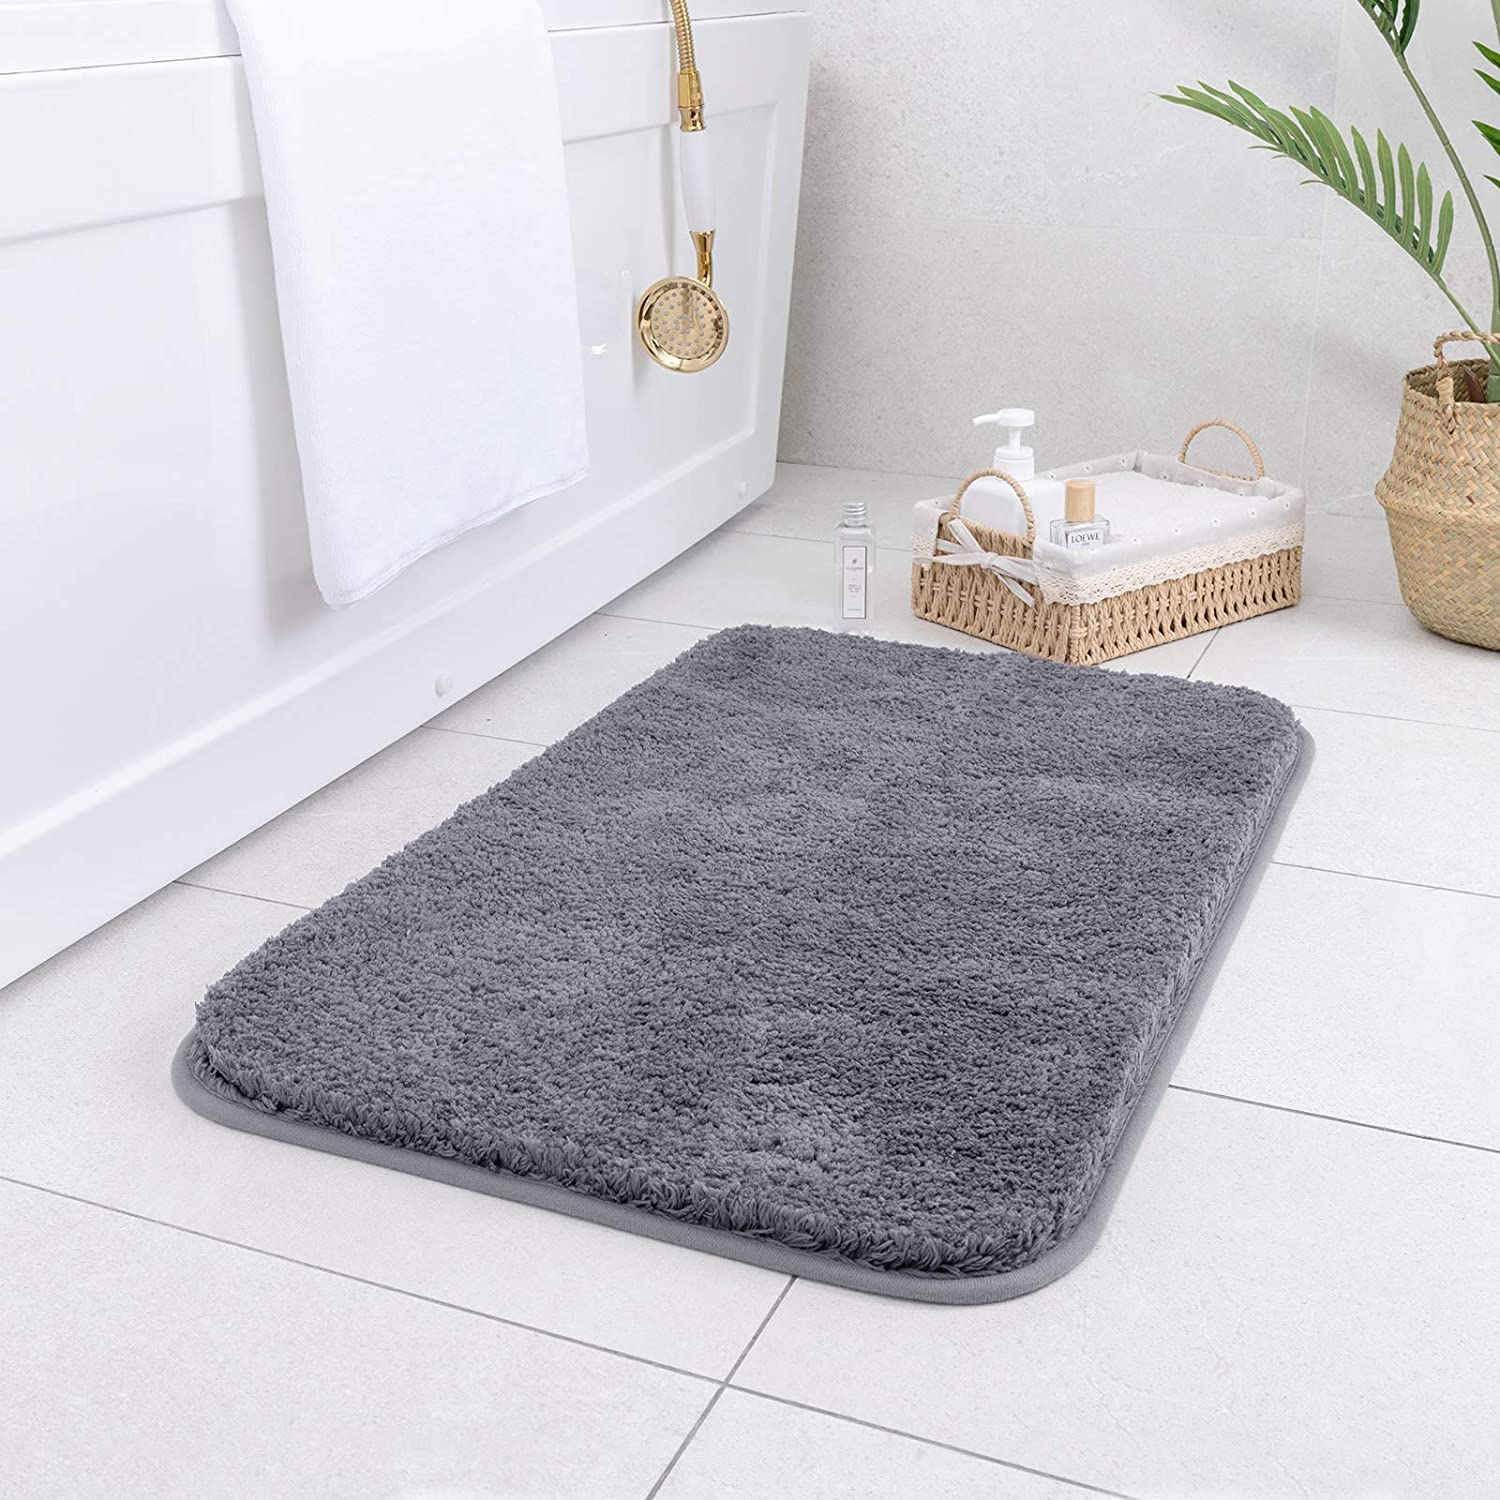 Carvapet Non-Slip Bathroom Rug High Water Absorbent Bath Mat Microfiber Soft Plush Shaggy Mat, 16 by 24 inches, Dark Gray